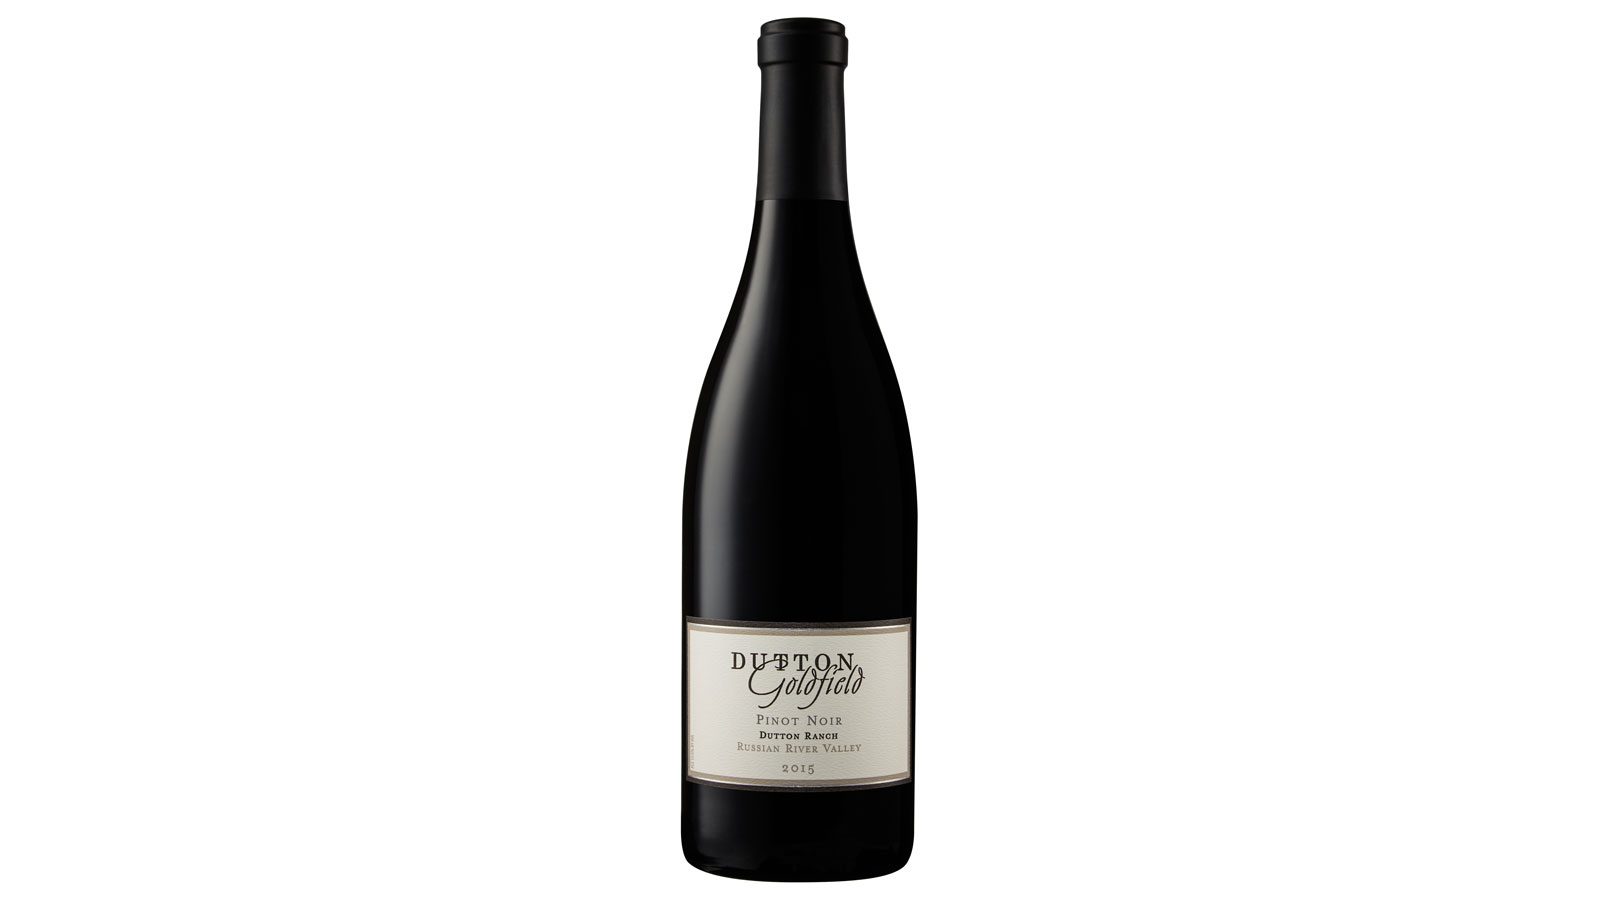 7. California Pinot Noir